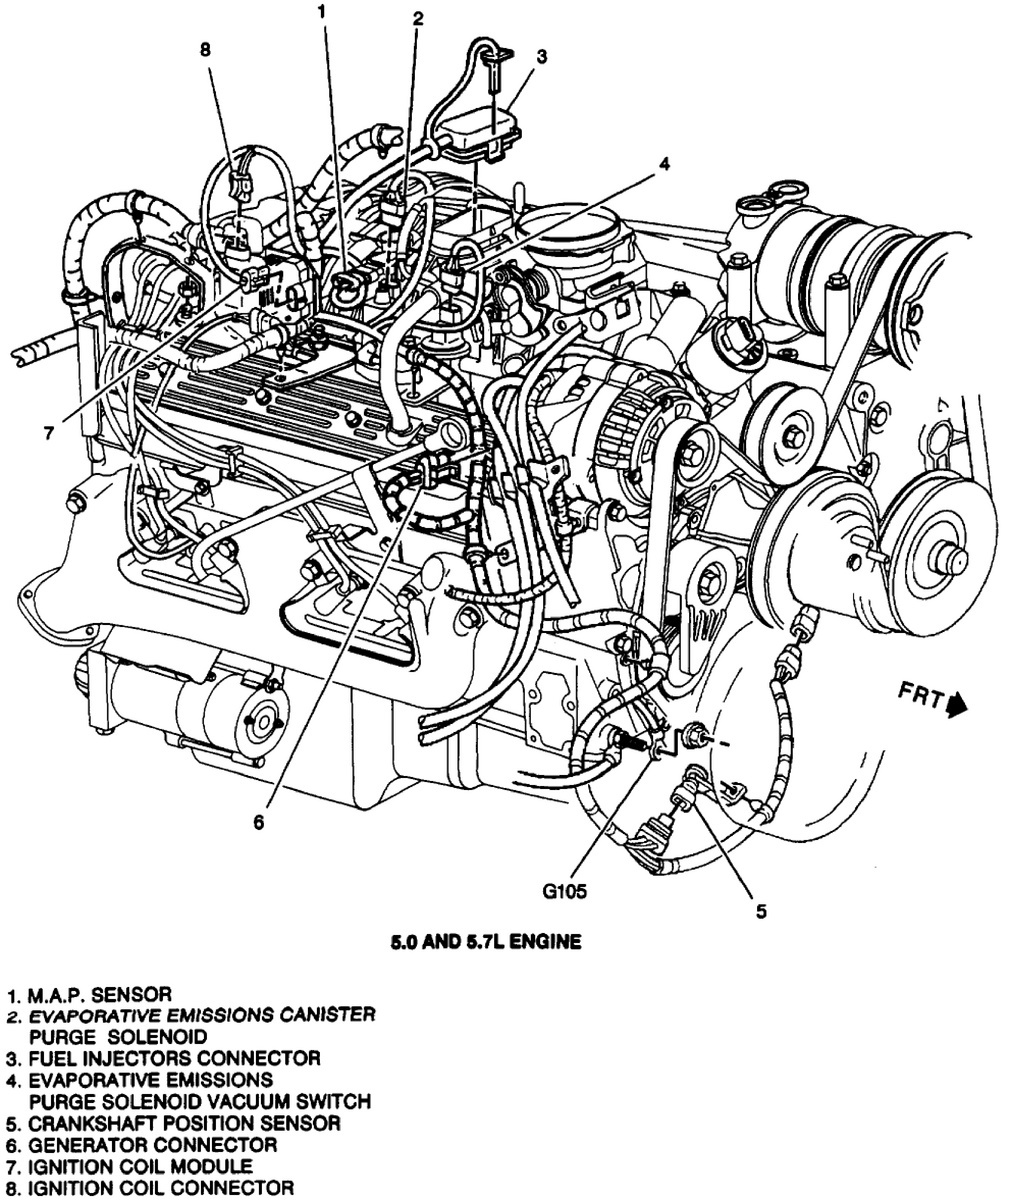 1989 Chevy Lumina 3 1 Engine Diagram Wiring Diagrams. 97 Chevy Lumina Engine Diagram Wiring Library Ltz 1989 3 1. Wiring. 1992 K1500 Engine Diagram At Scoala.co